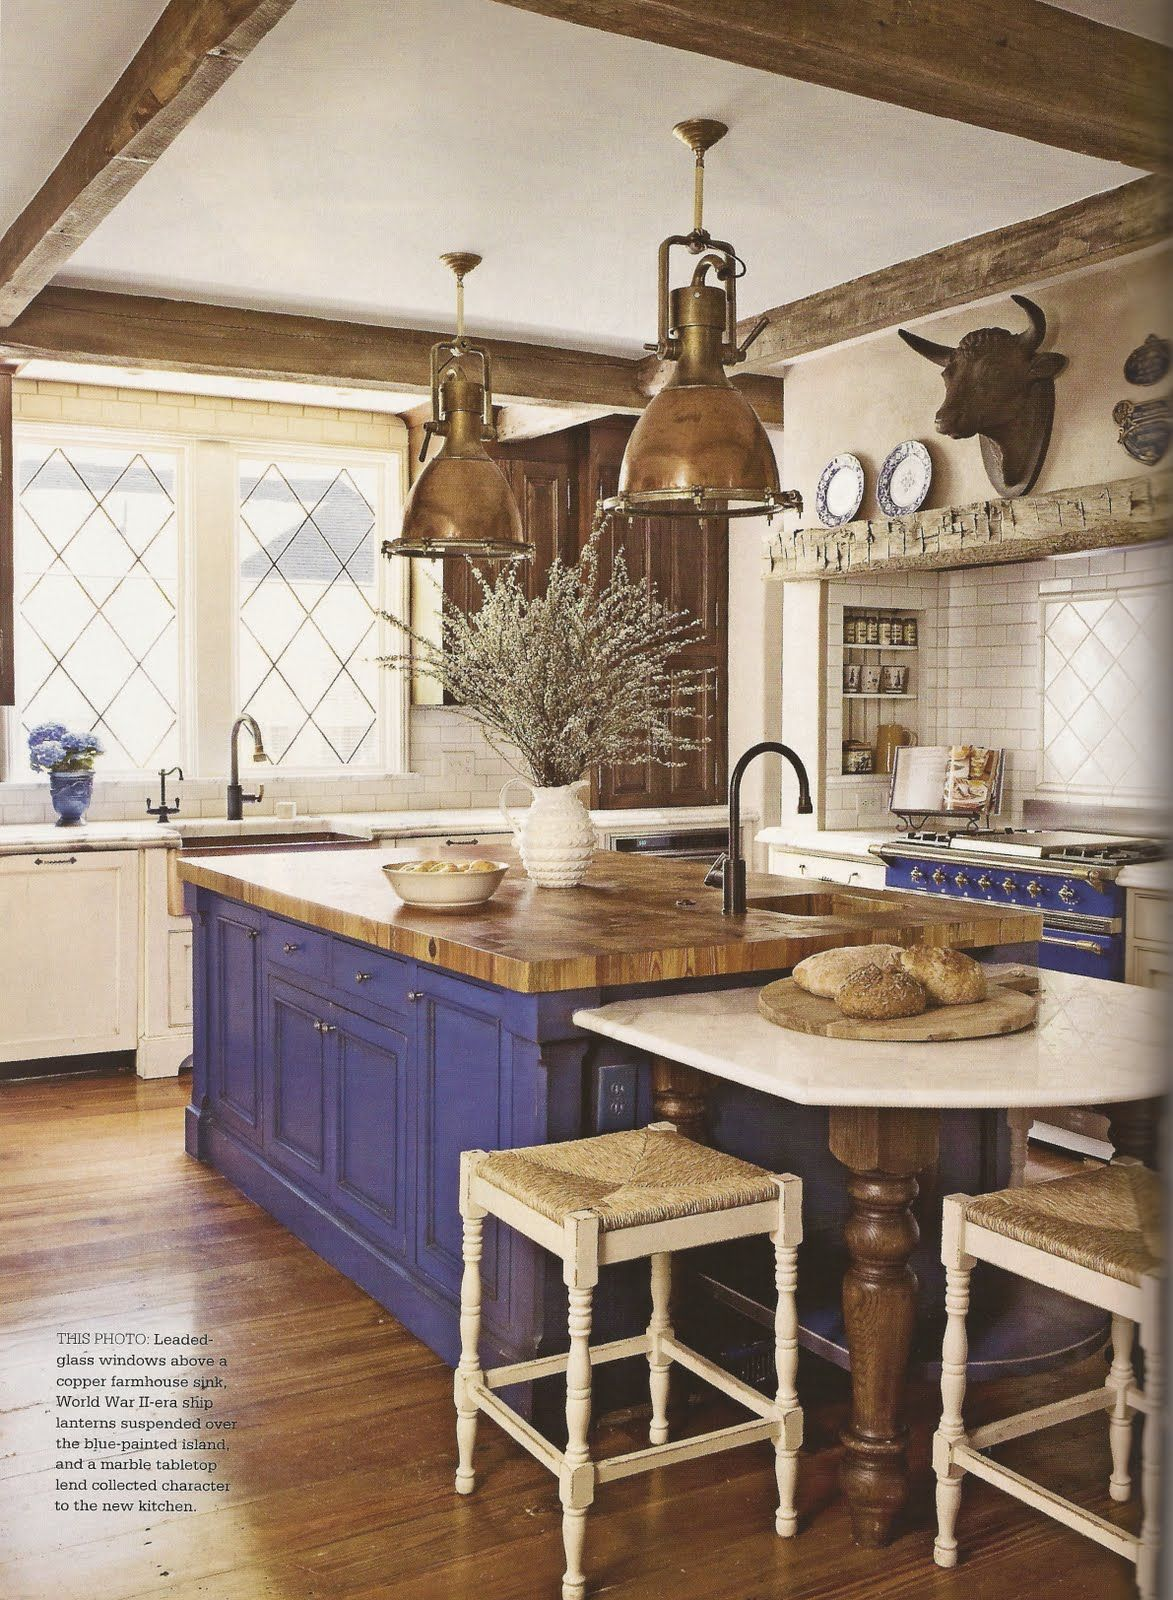 Blue island and oven in French Country kitchen Country